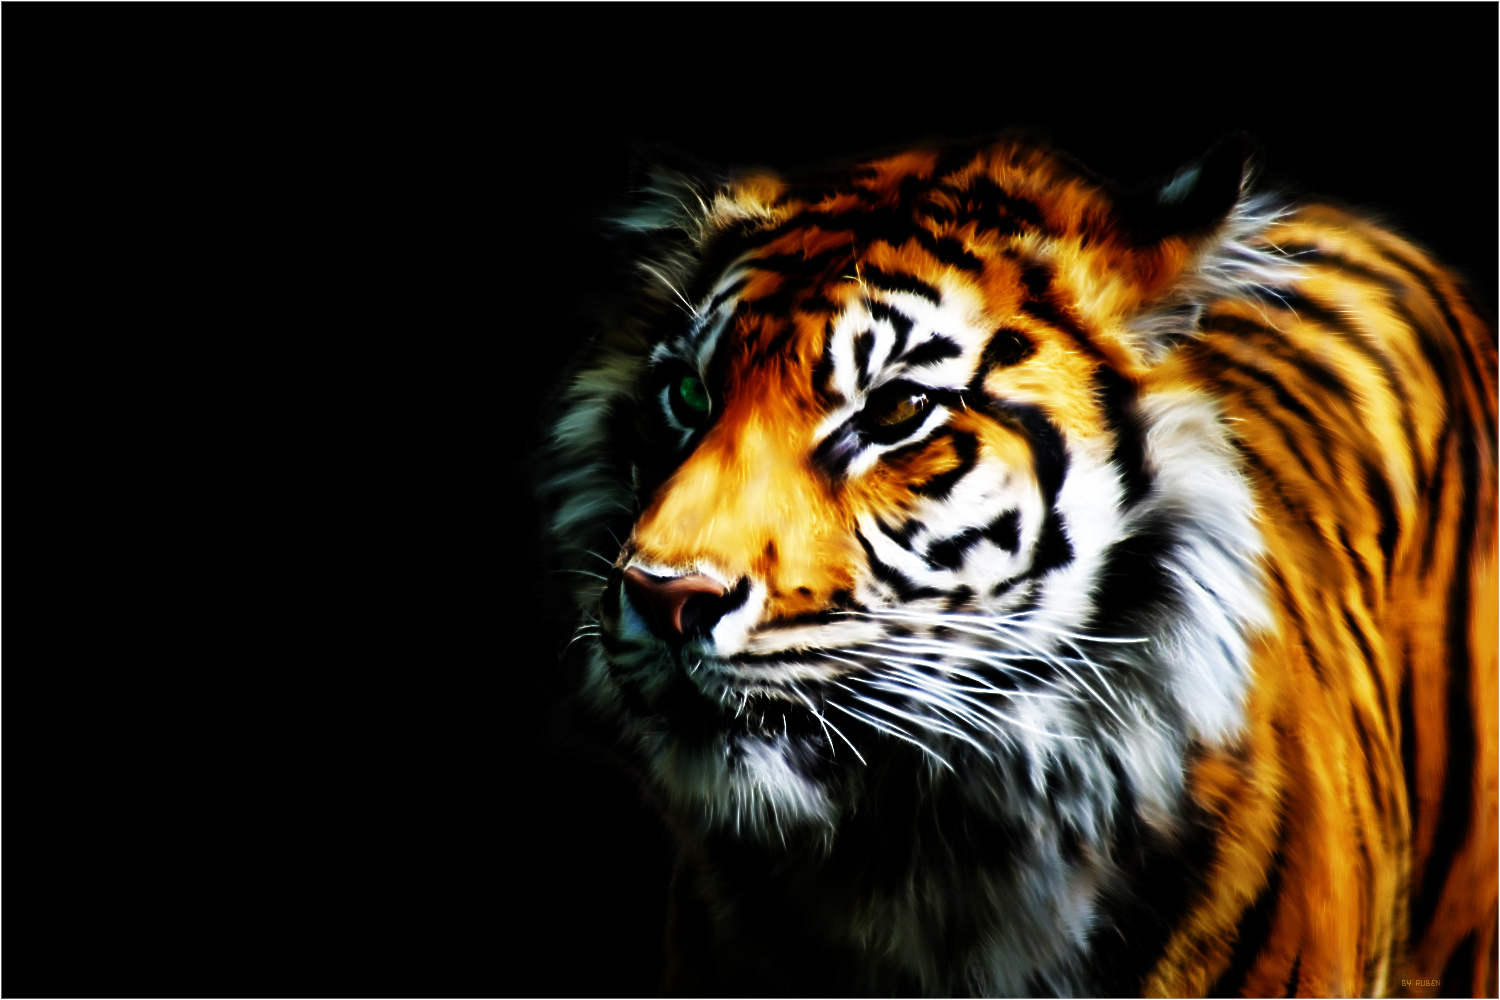 69+] Tiger Background Pictures on WallpaperSafari